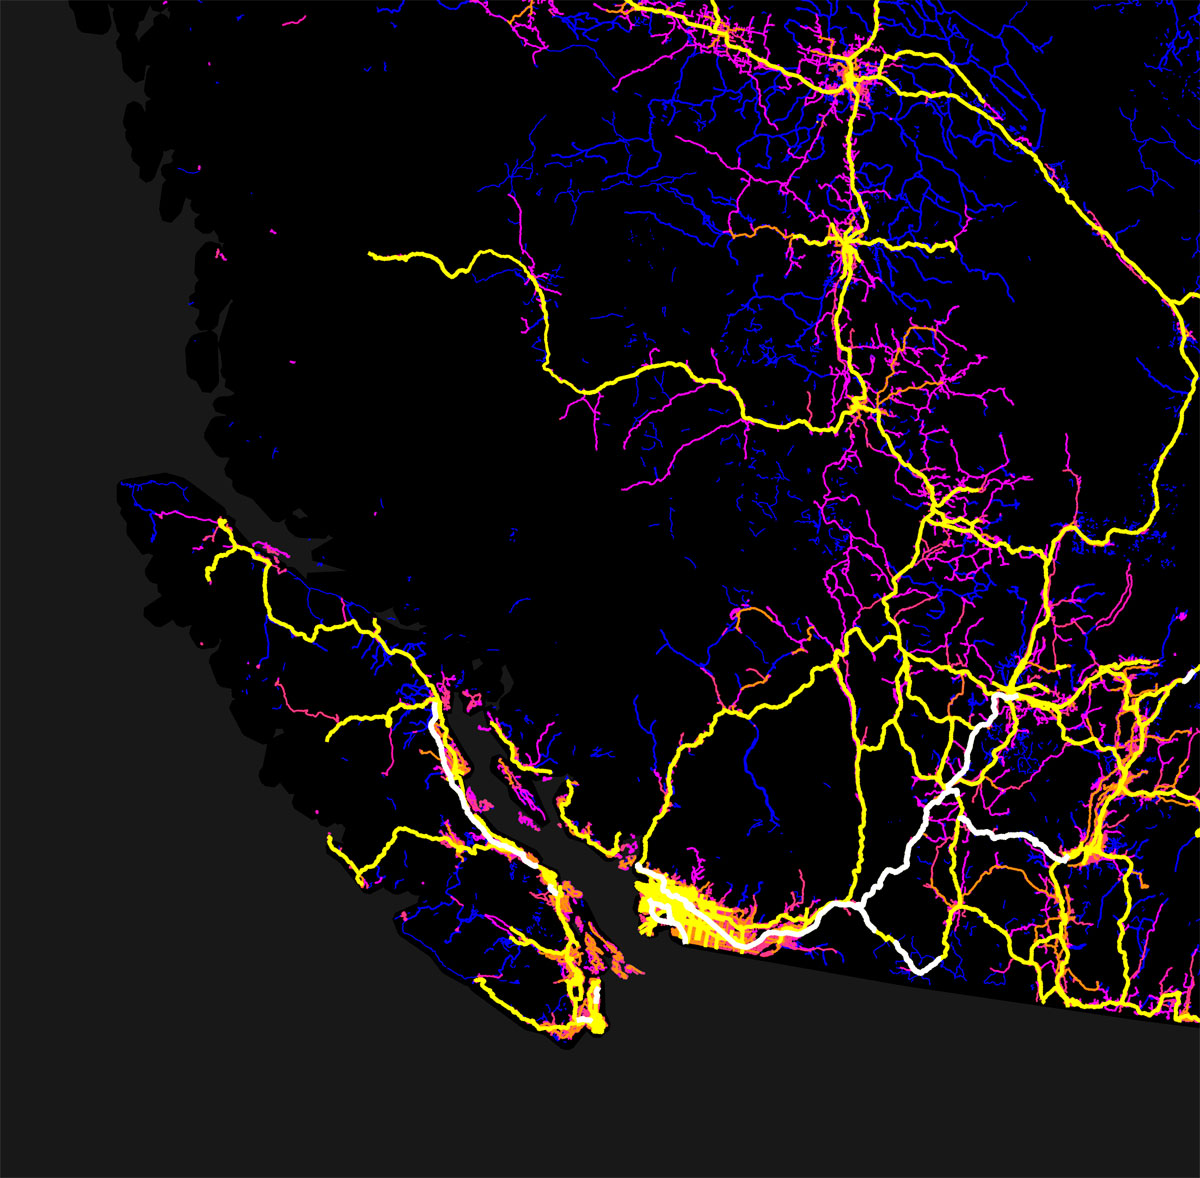 canada mapped by trails roads streets and highways by robbi bishop taylor 5 Canada Mapped by Trails, Roads, Streets and Highways